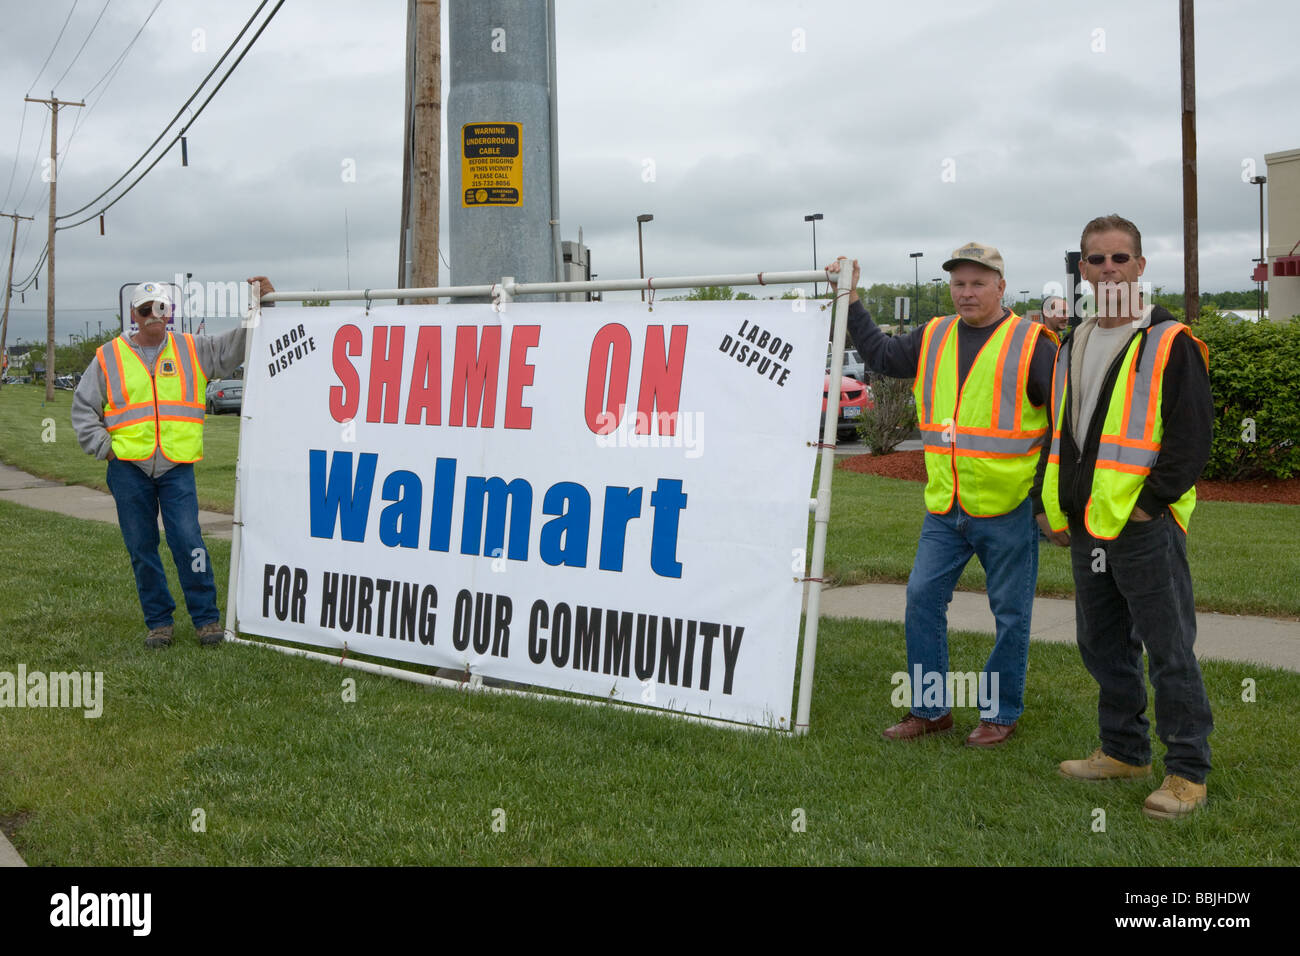 walmart protest stock photos walmart protest stock images alamy union carpenters labor dispute protesting walmart hiring scab labor to build addtion in amsterdam new york